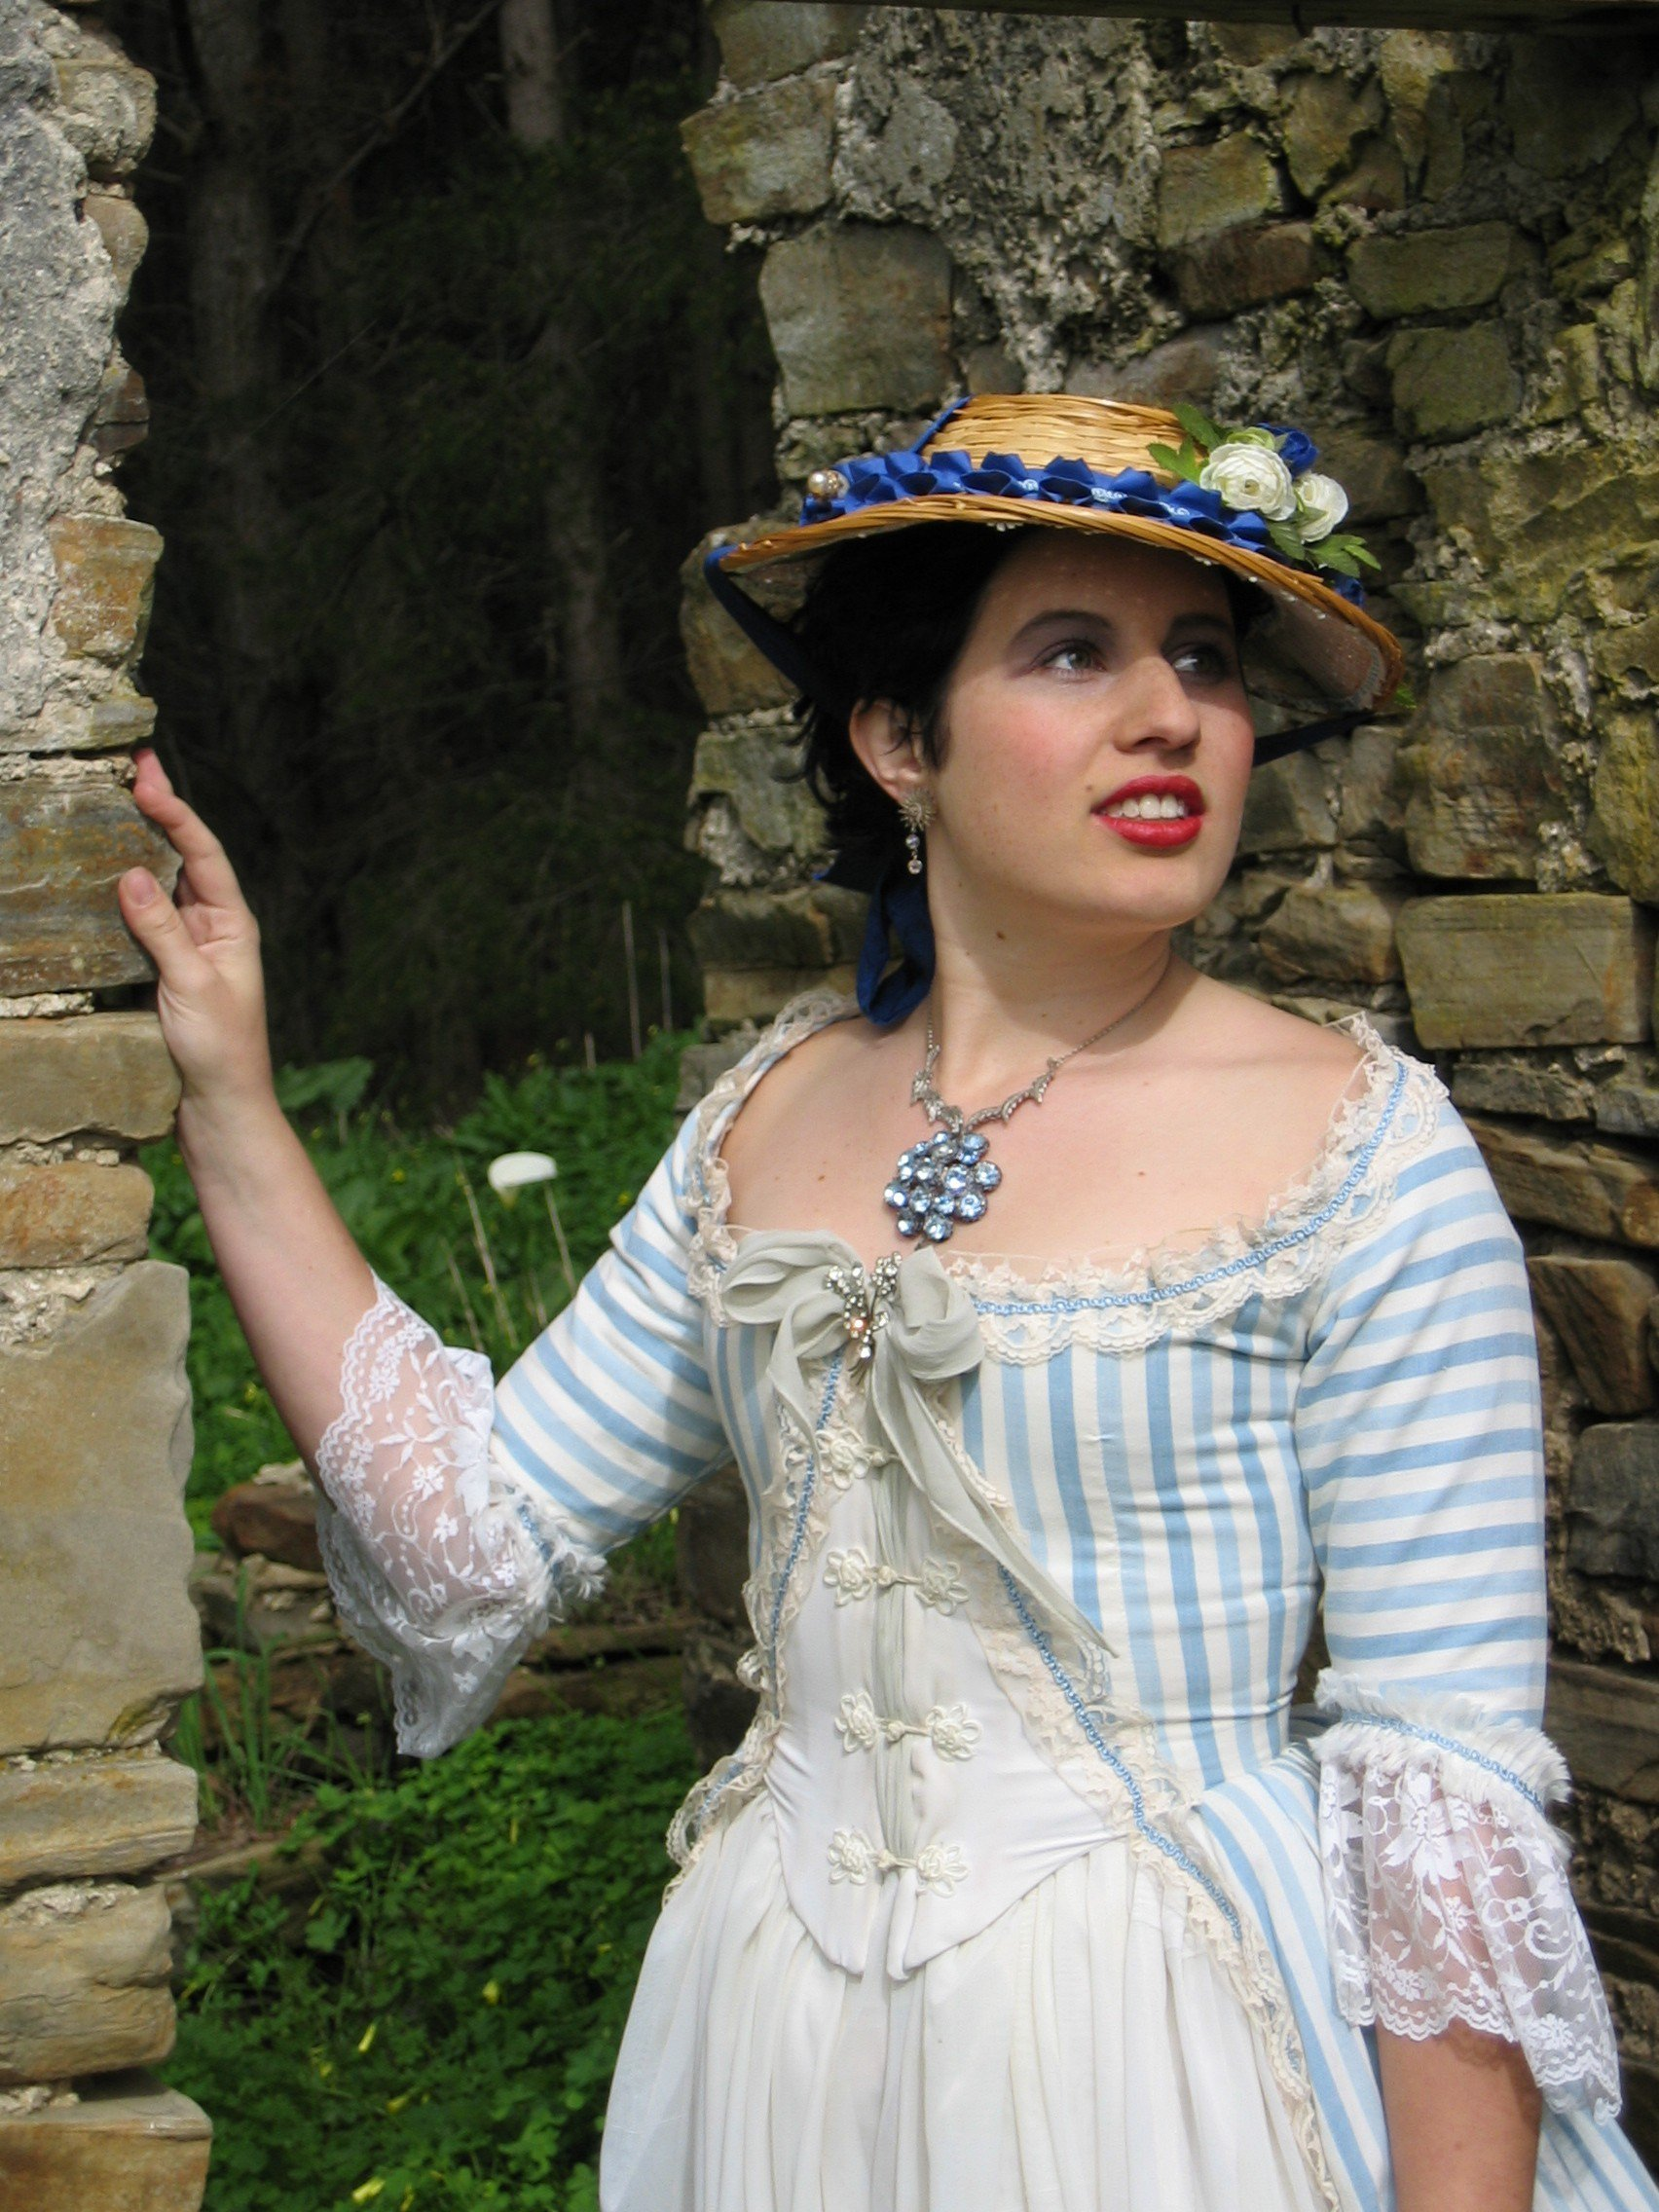 Sense and Sensibility at Powerscourt Gardens